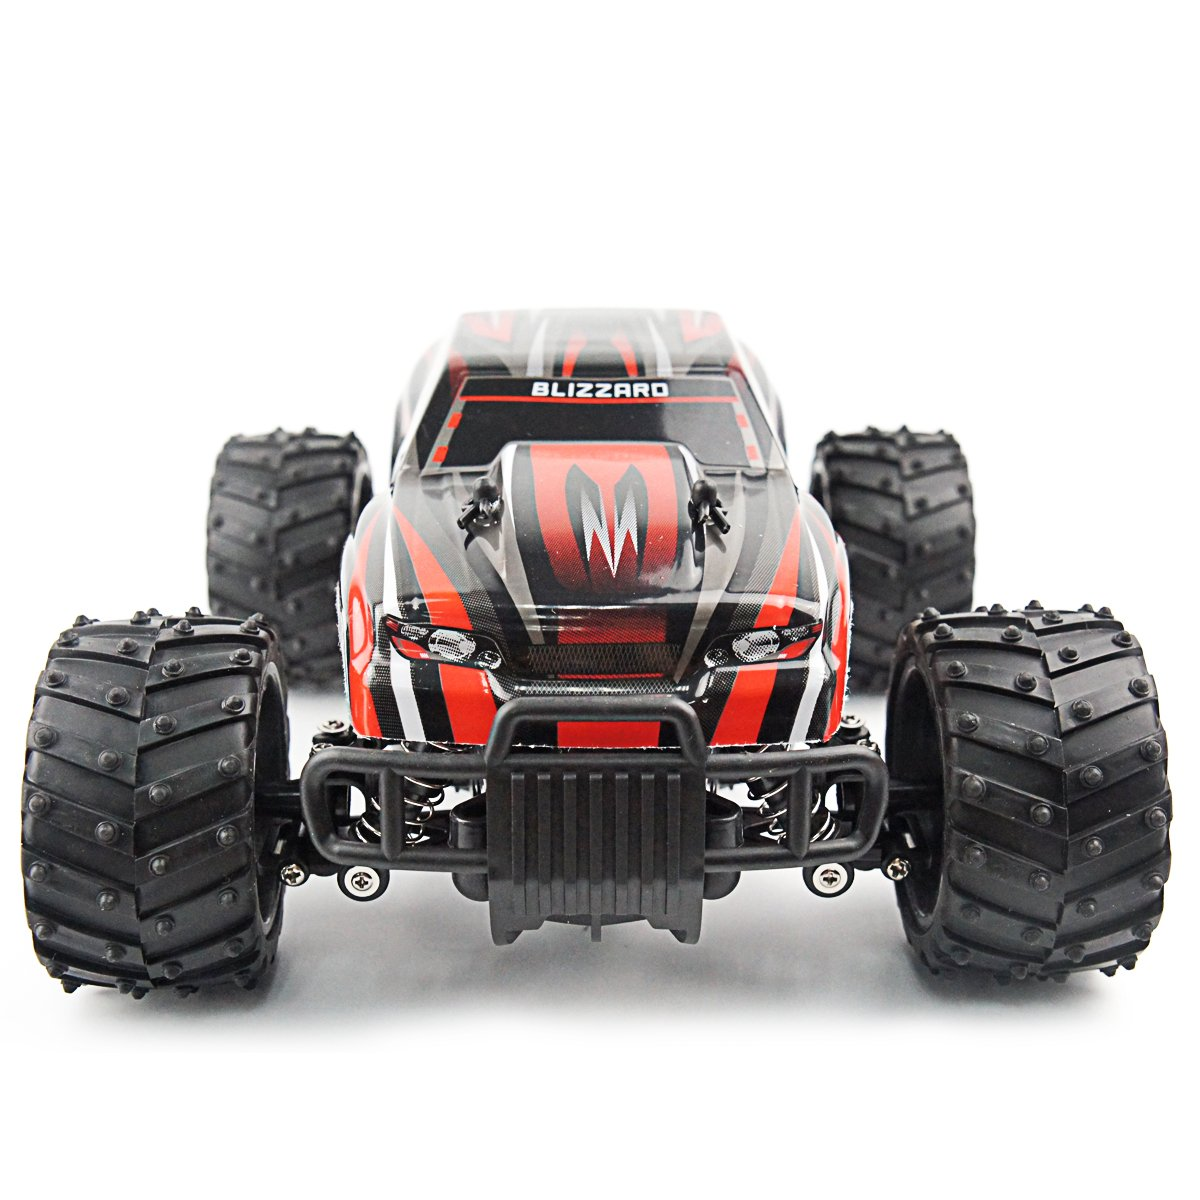 Fistone RC Car 2.4G High Speed Racing Car 20km/h 1:16 Scale 2WD Electric Radio Control Monster Truck Rock Off-Road Vehicle Buggy Hobby Electronic Game Toys Model